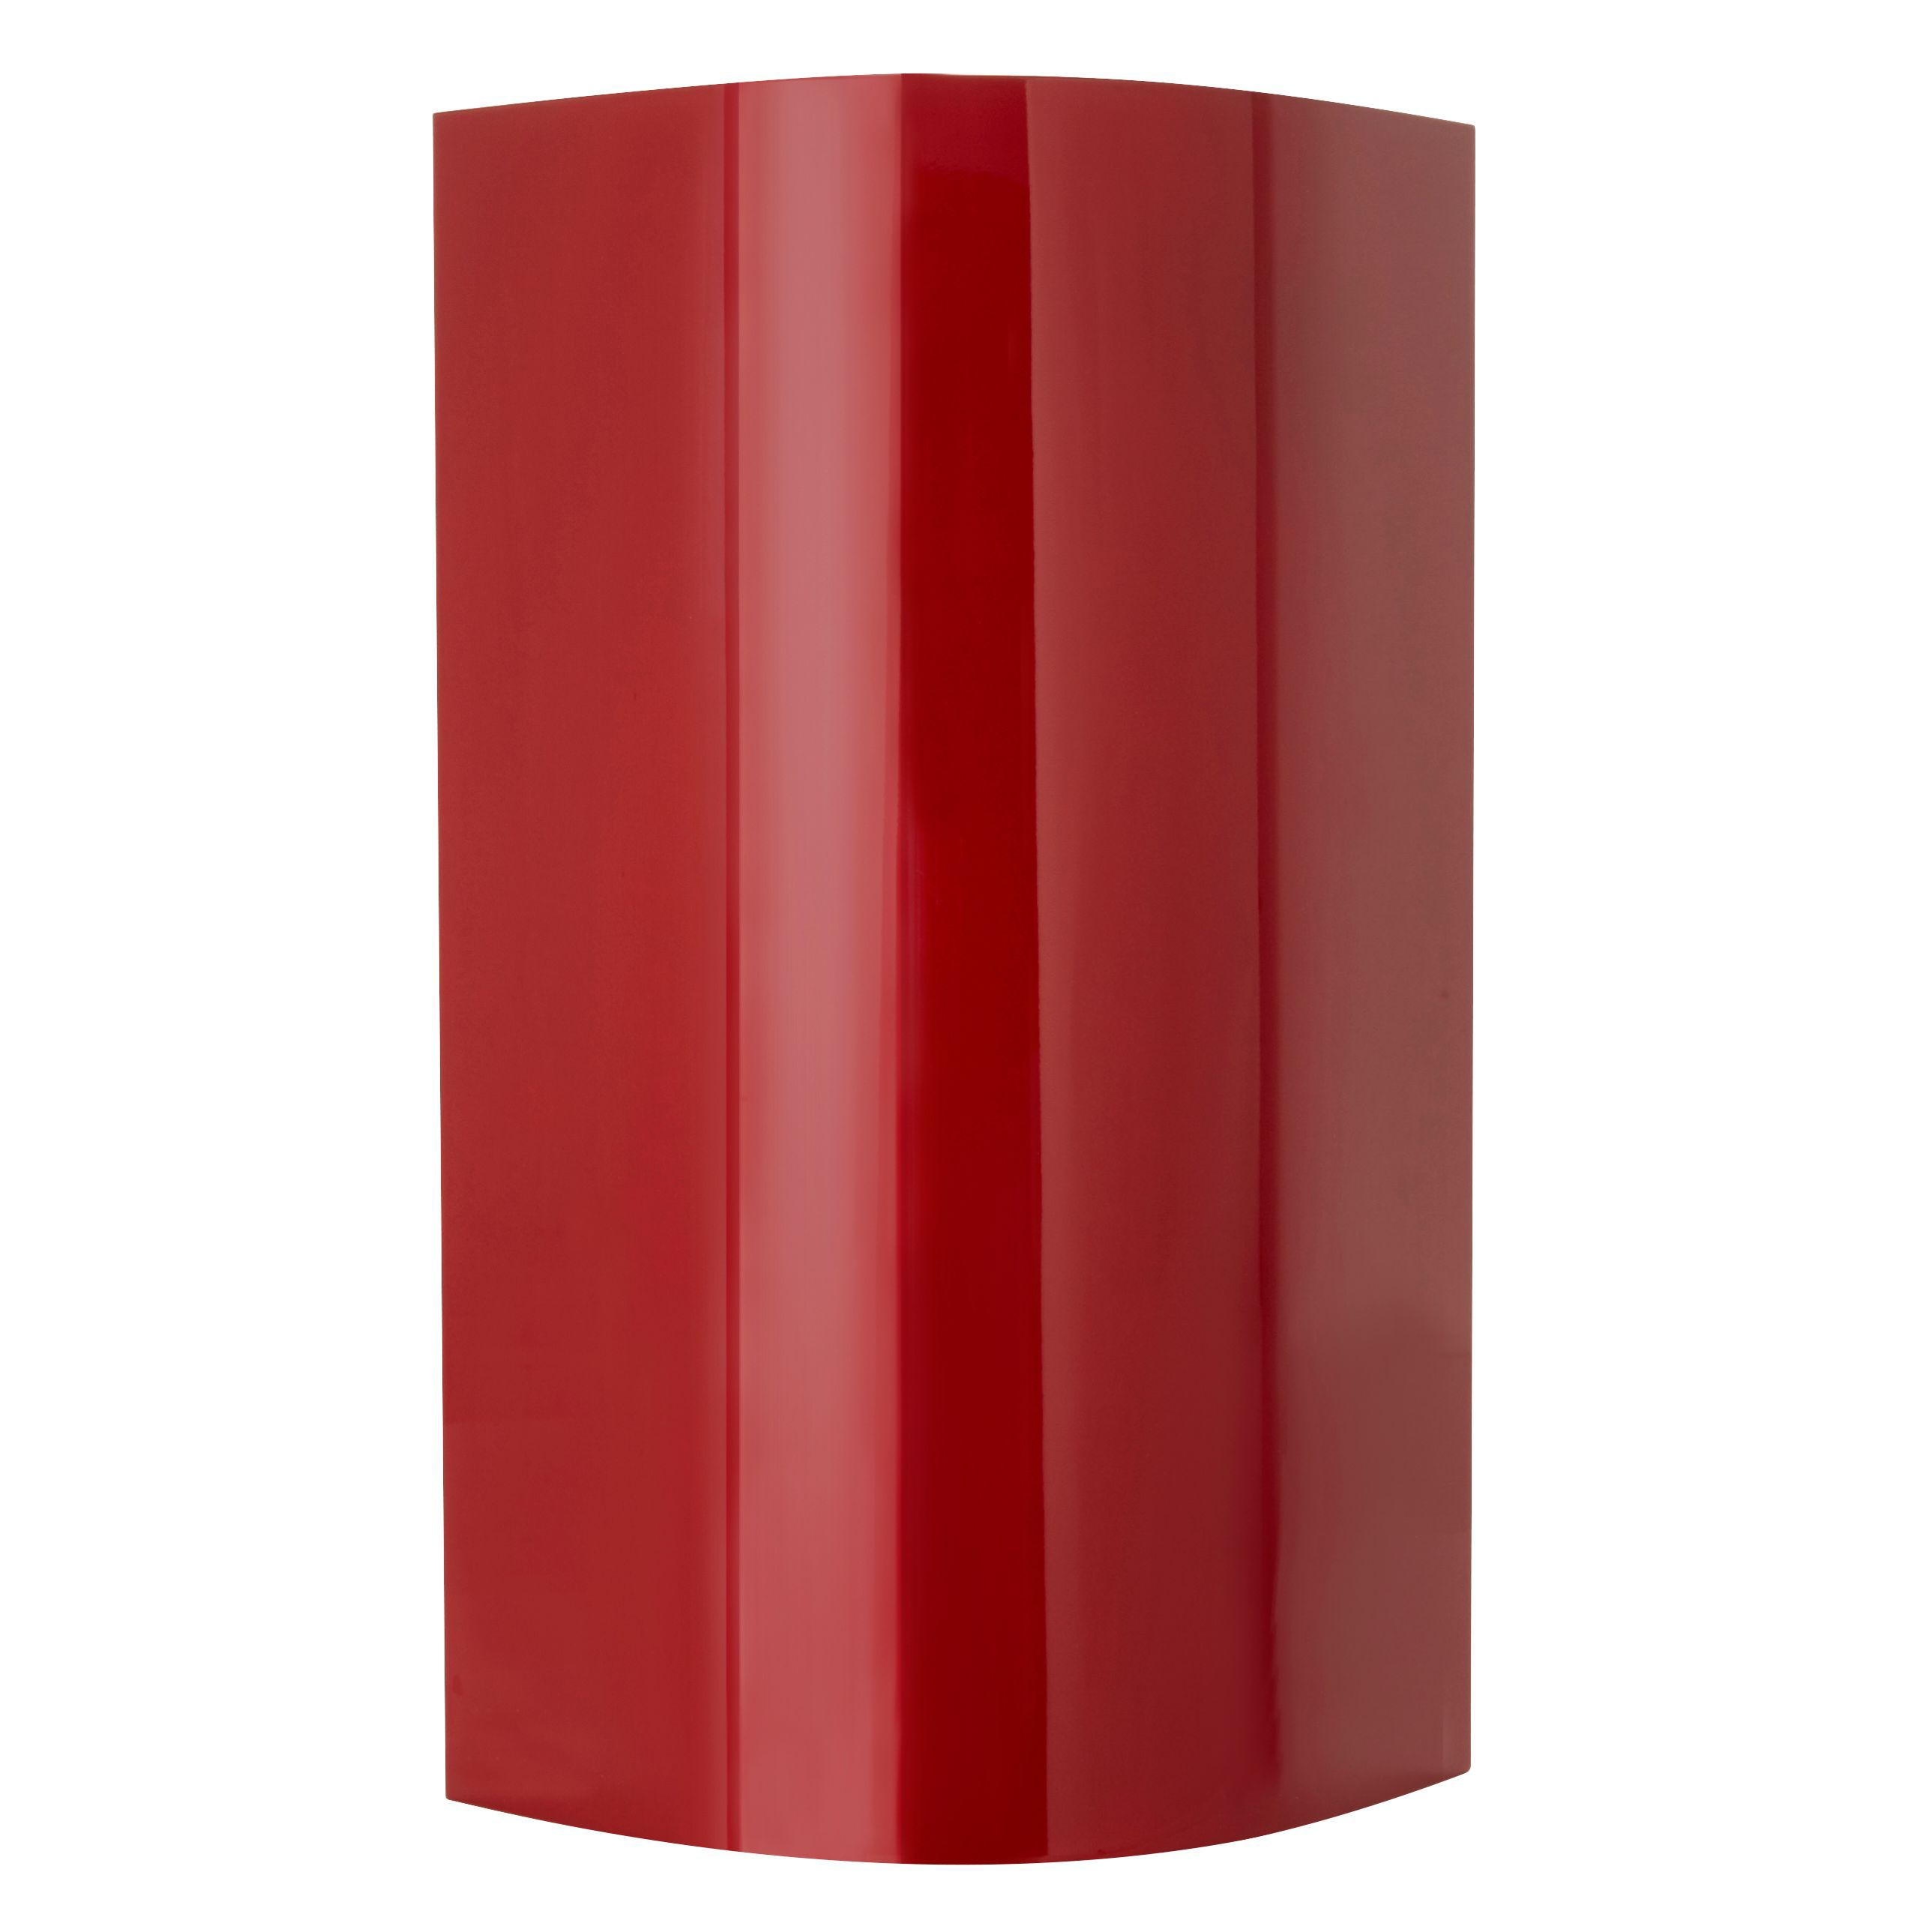 Cooke lewis high gloss red high gloss red external for Red high gloss kitchen doors